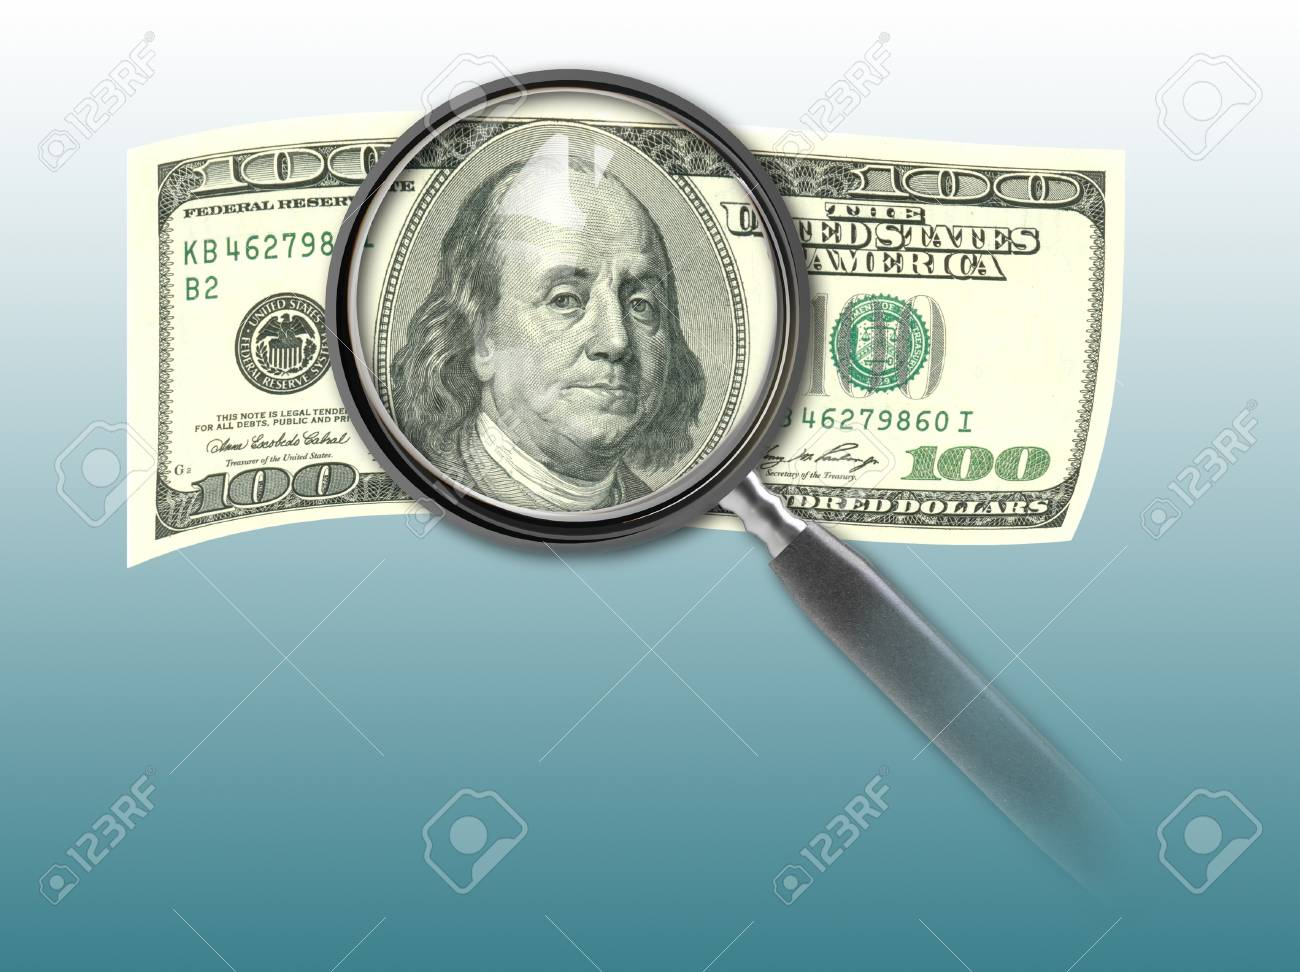 Hundred Dollar Bill And Magnifying Glmade In 2d Software Stock P O 21830008